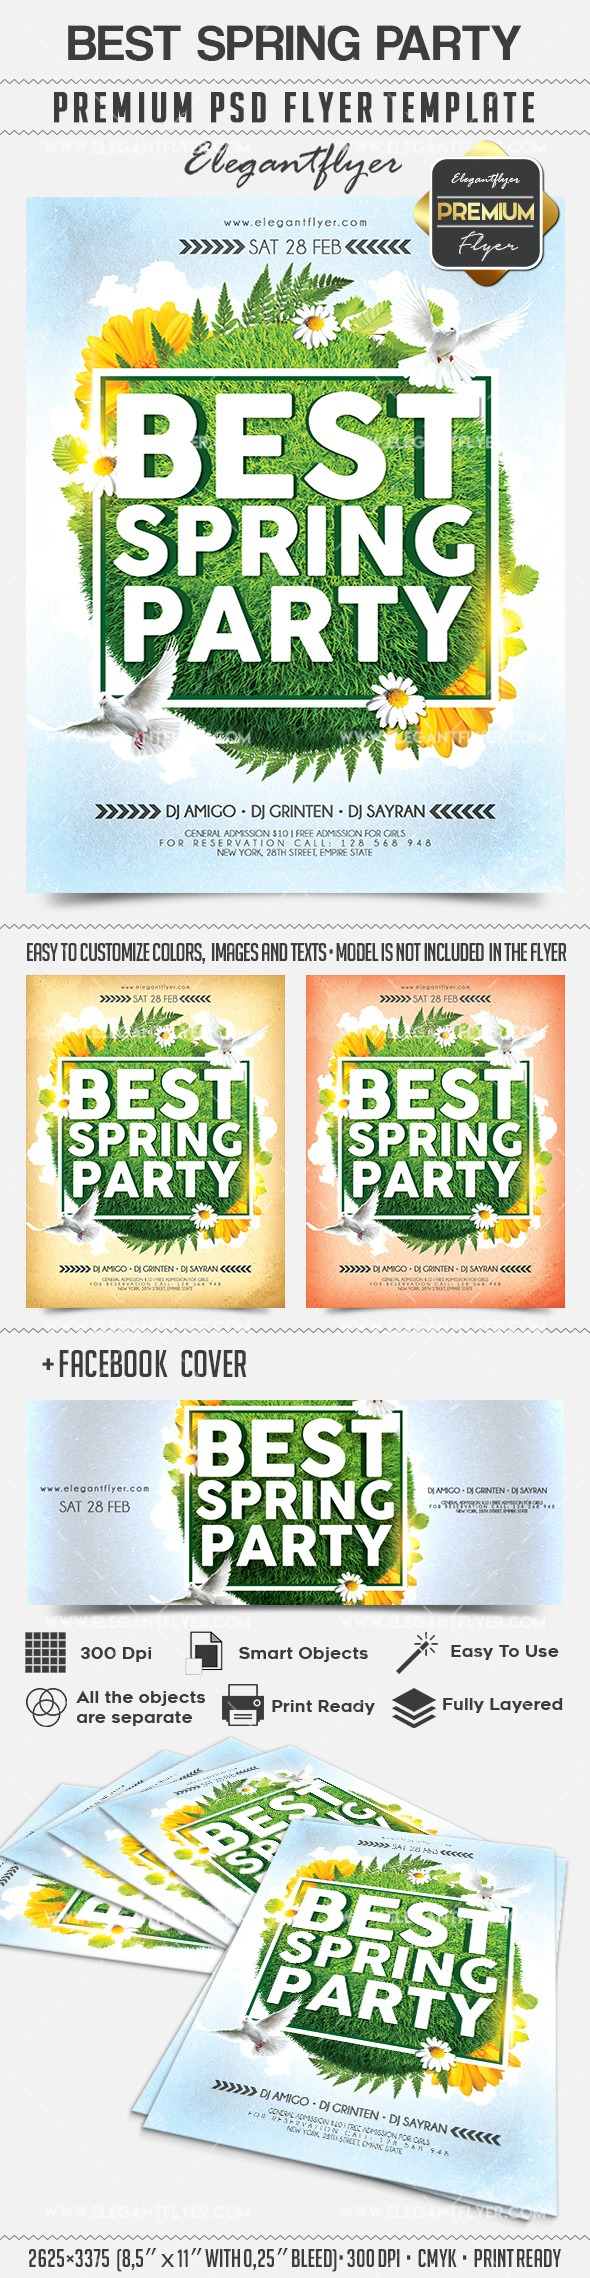 Best Spring Party – Flyer PSD Template